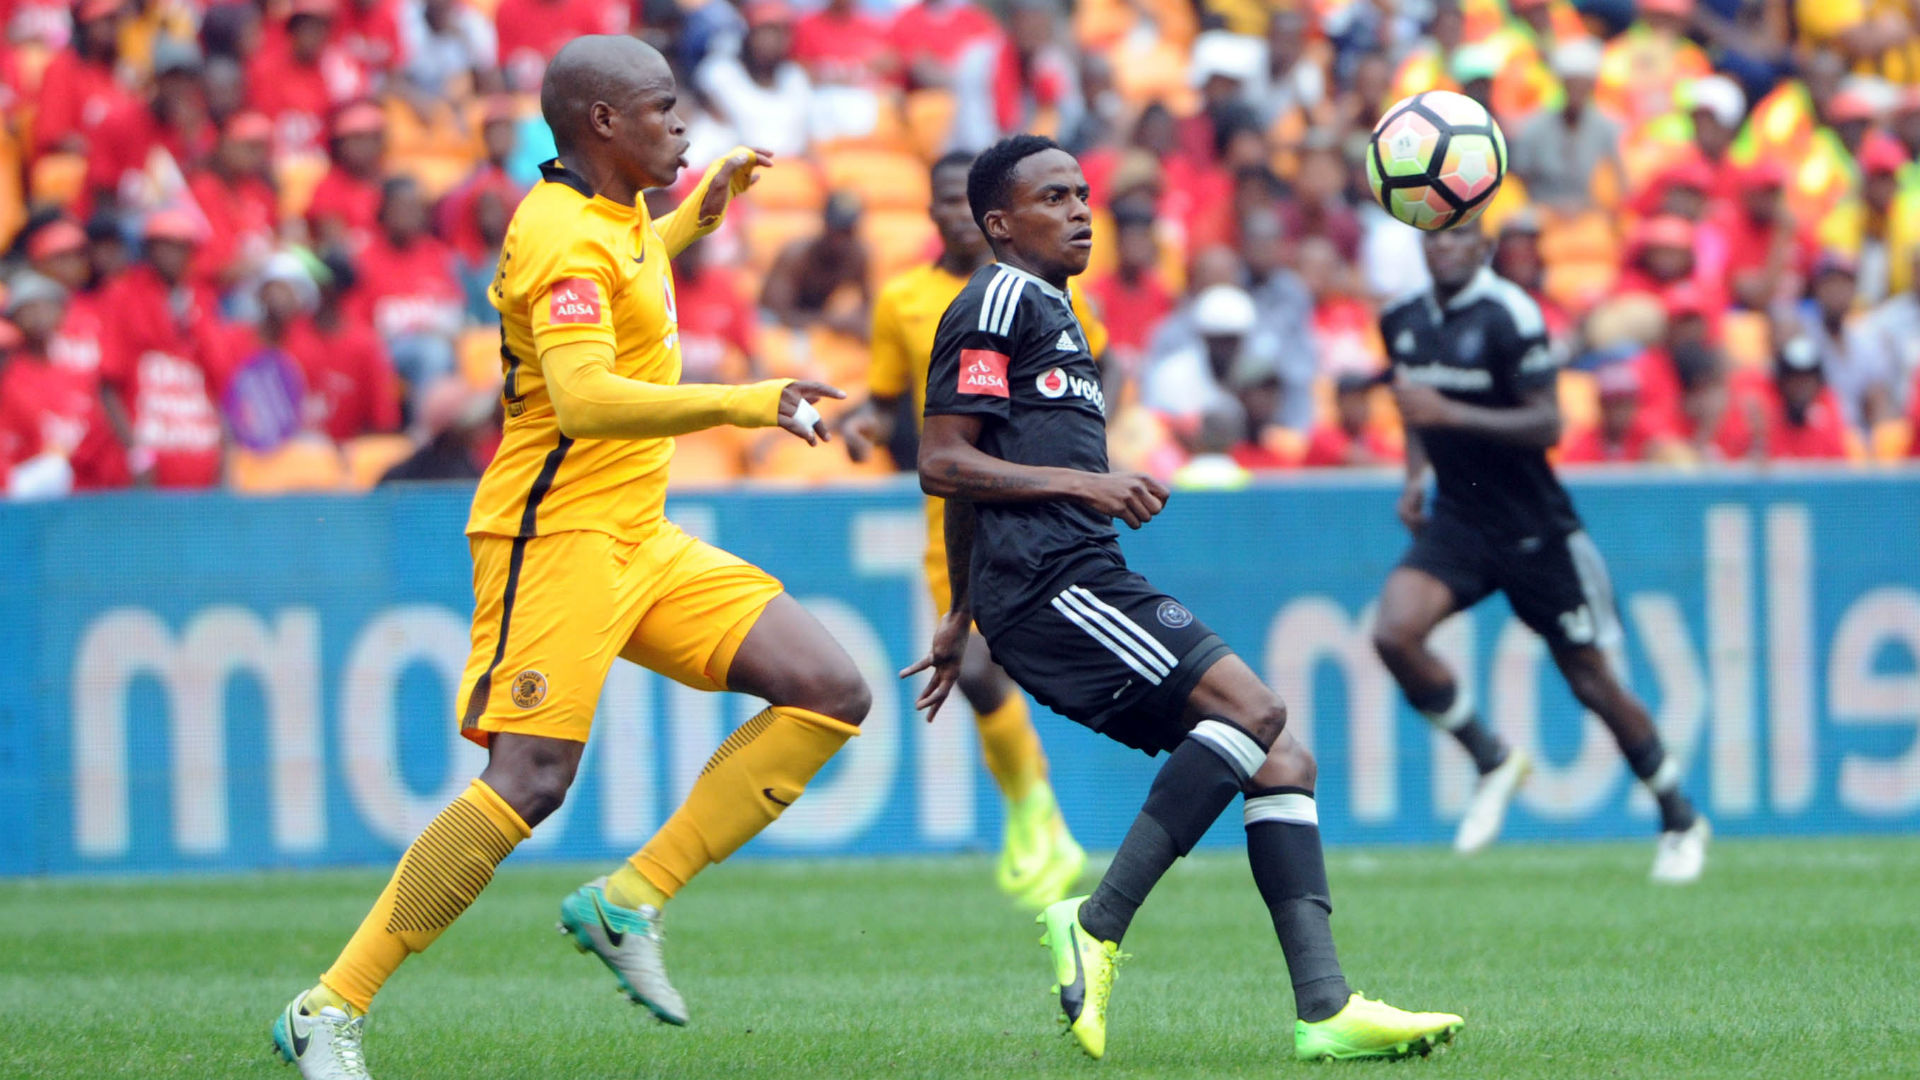 Amakhosi victorious in Carling Cup